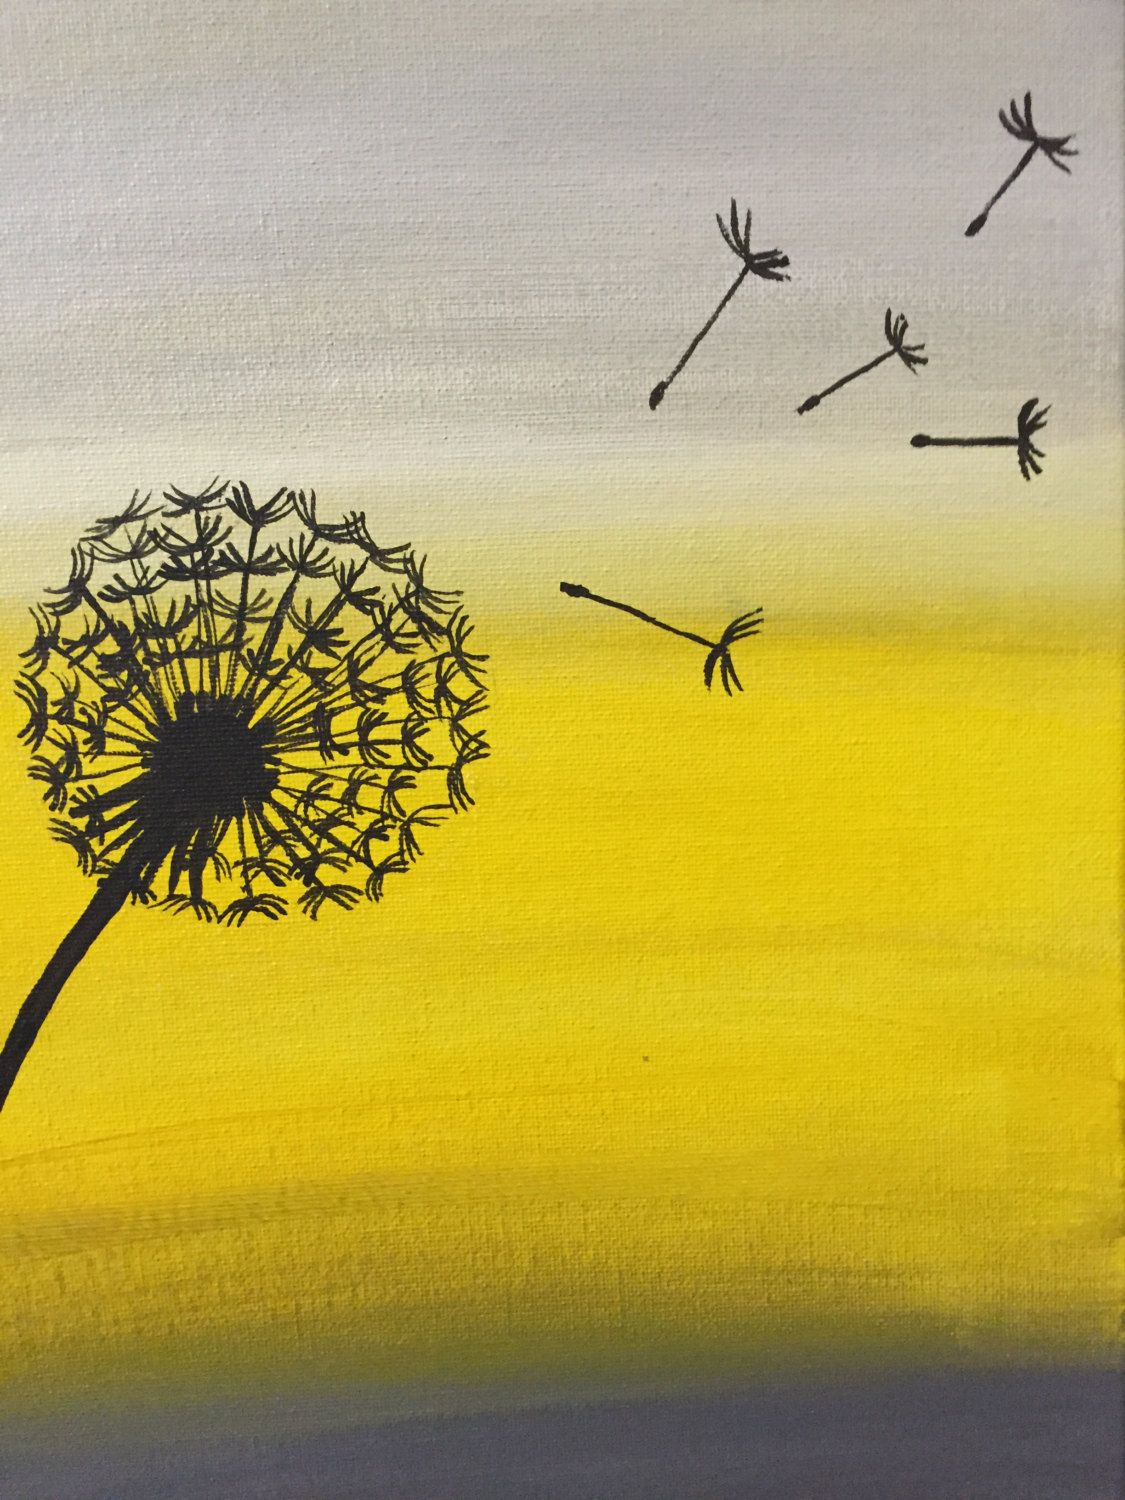 Dandelion Wishes - Acrylic original painting - yellow and grey 11x14 ...